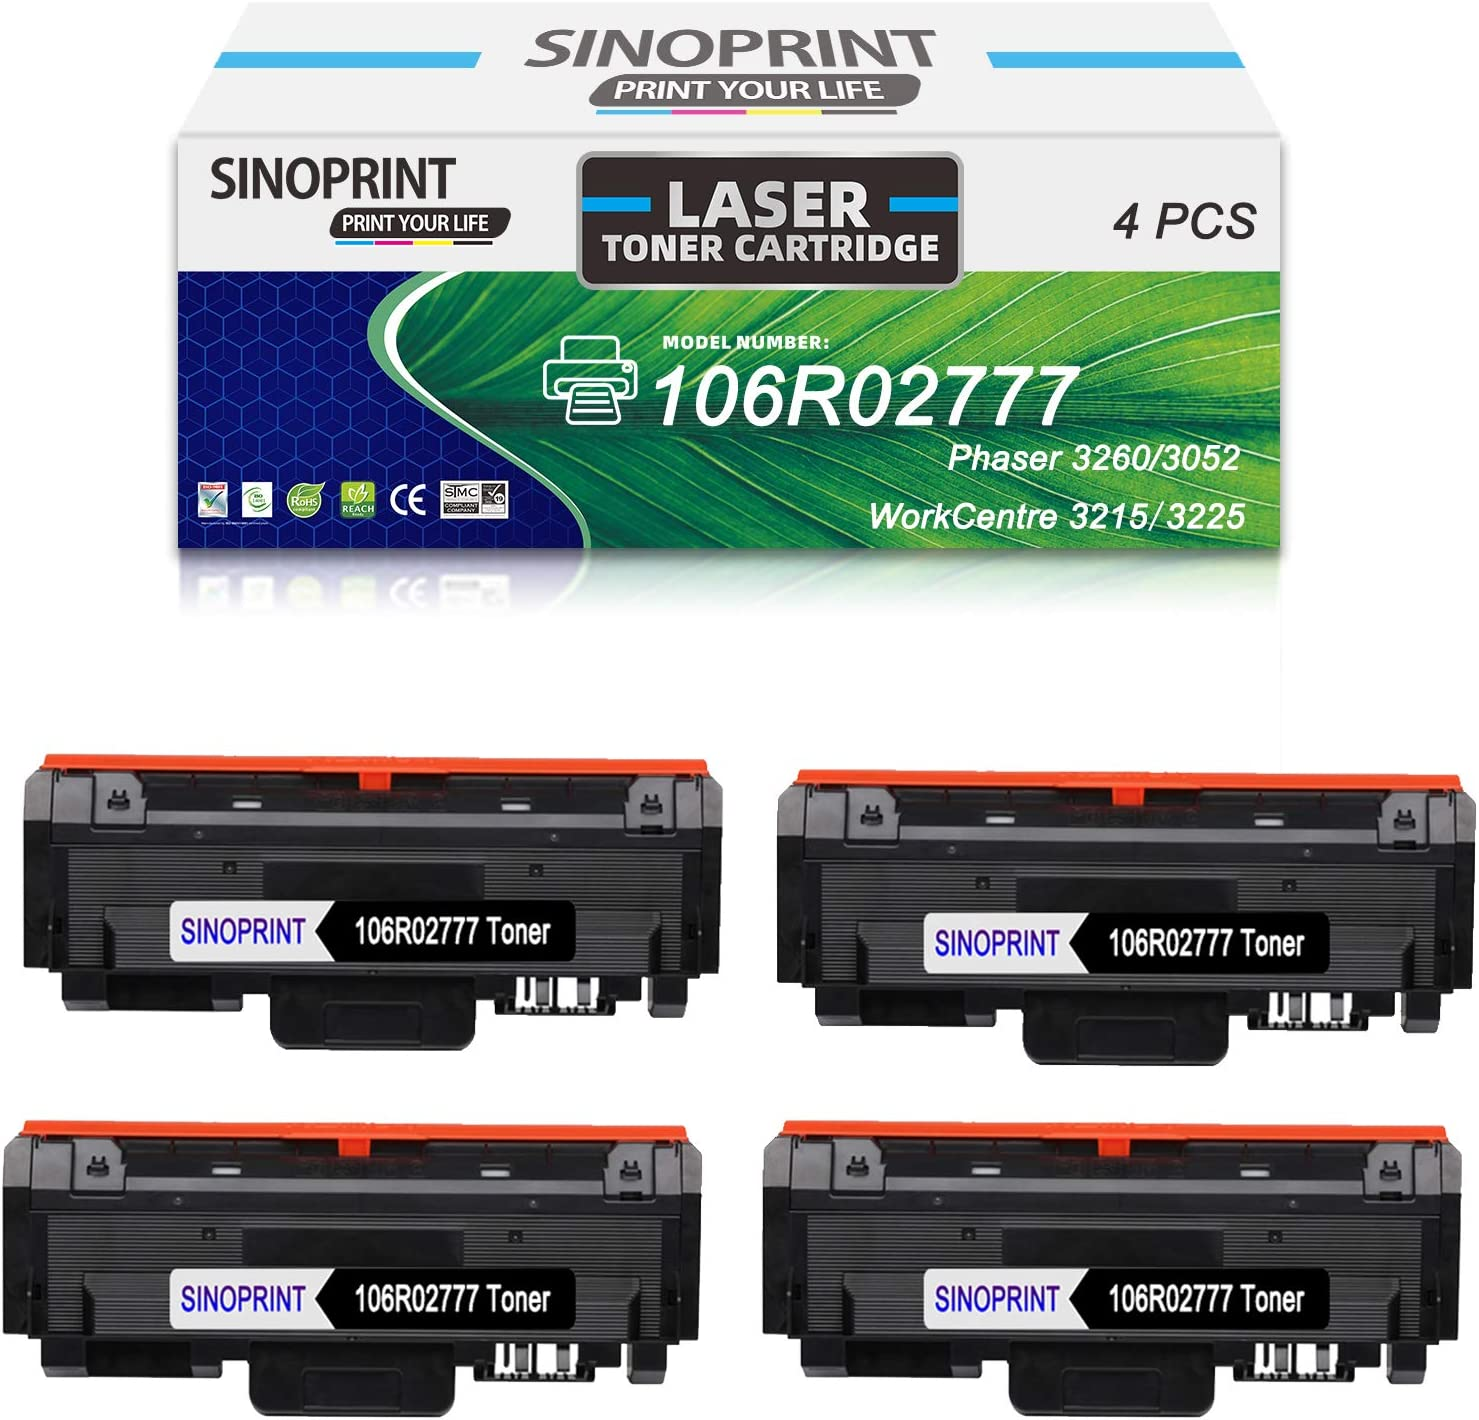 SINOPRINT Compatible 106r02777 Toner Cartridge for Xerox 3260 106r02777 Black Toner Worked in Xerox WorkCentre 3215 3215NI 3225 3225DNI Phaser 3260 3260DNI 3260DI 3052 (Black, 4-Pack)